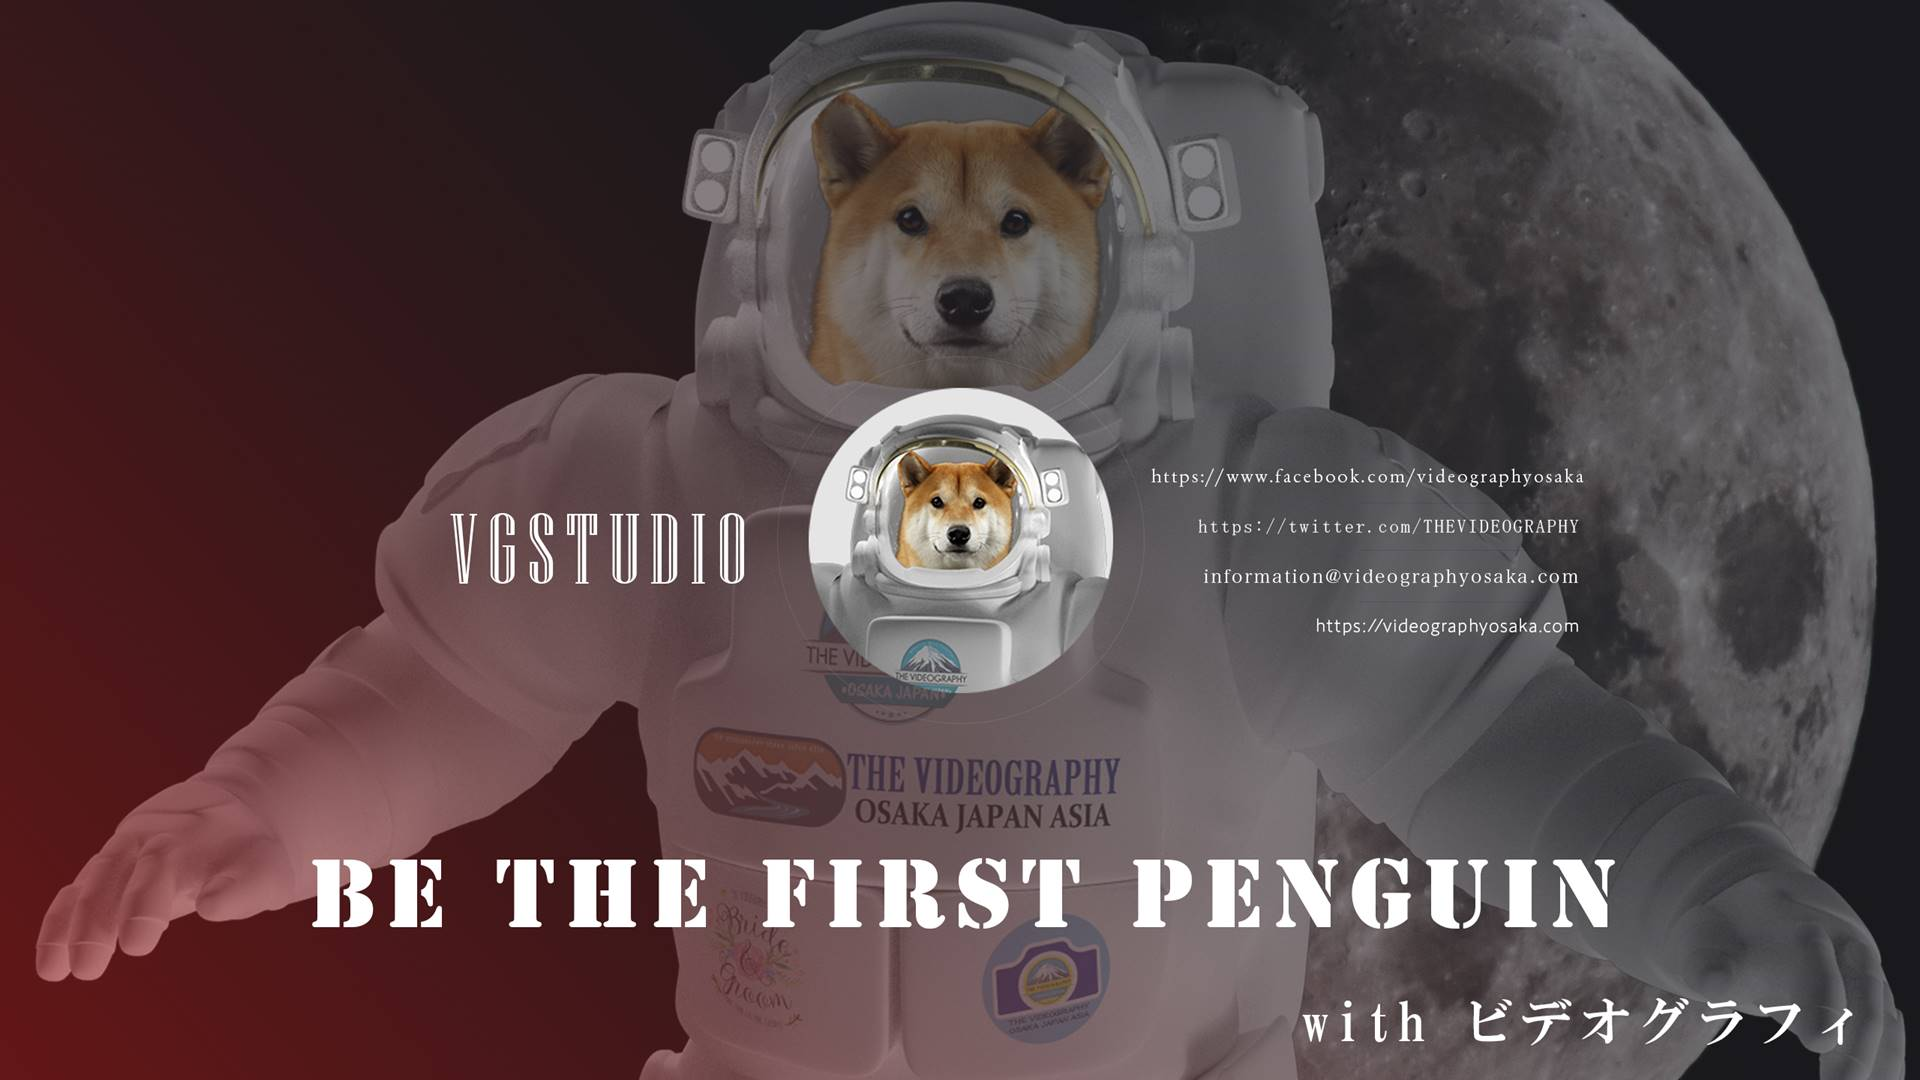 Be the First Penguin. Winner takes all. ファーストペンギンになろう。勝者総取り方式のビジネスで生き残るために…